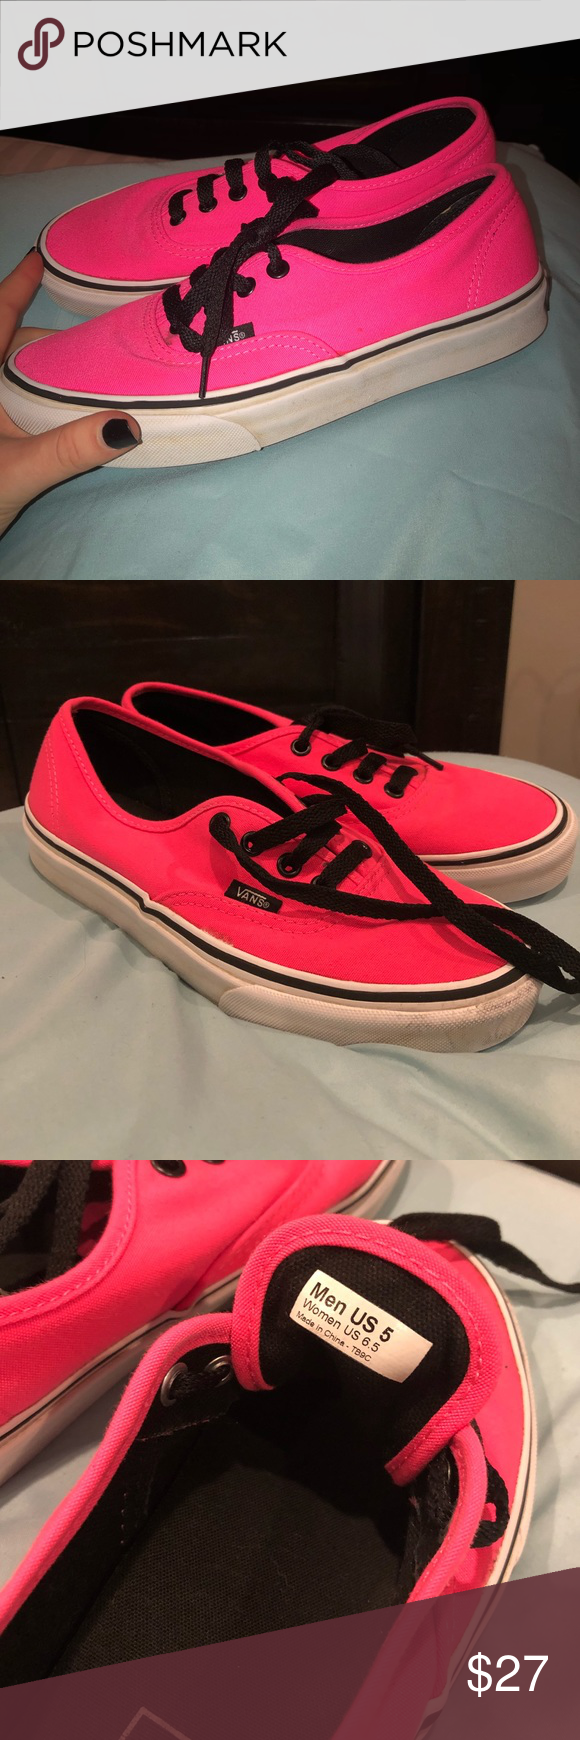 9dd03f0139440d Hot Pink Vans women s size 6.5 or men s size 5 hot pink original vans! in  very good condition and has plenty more wear in them shoot an offer!